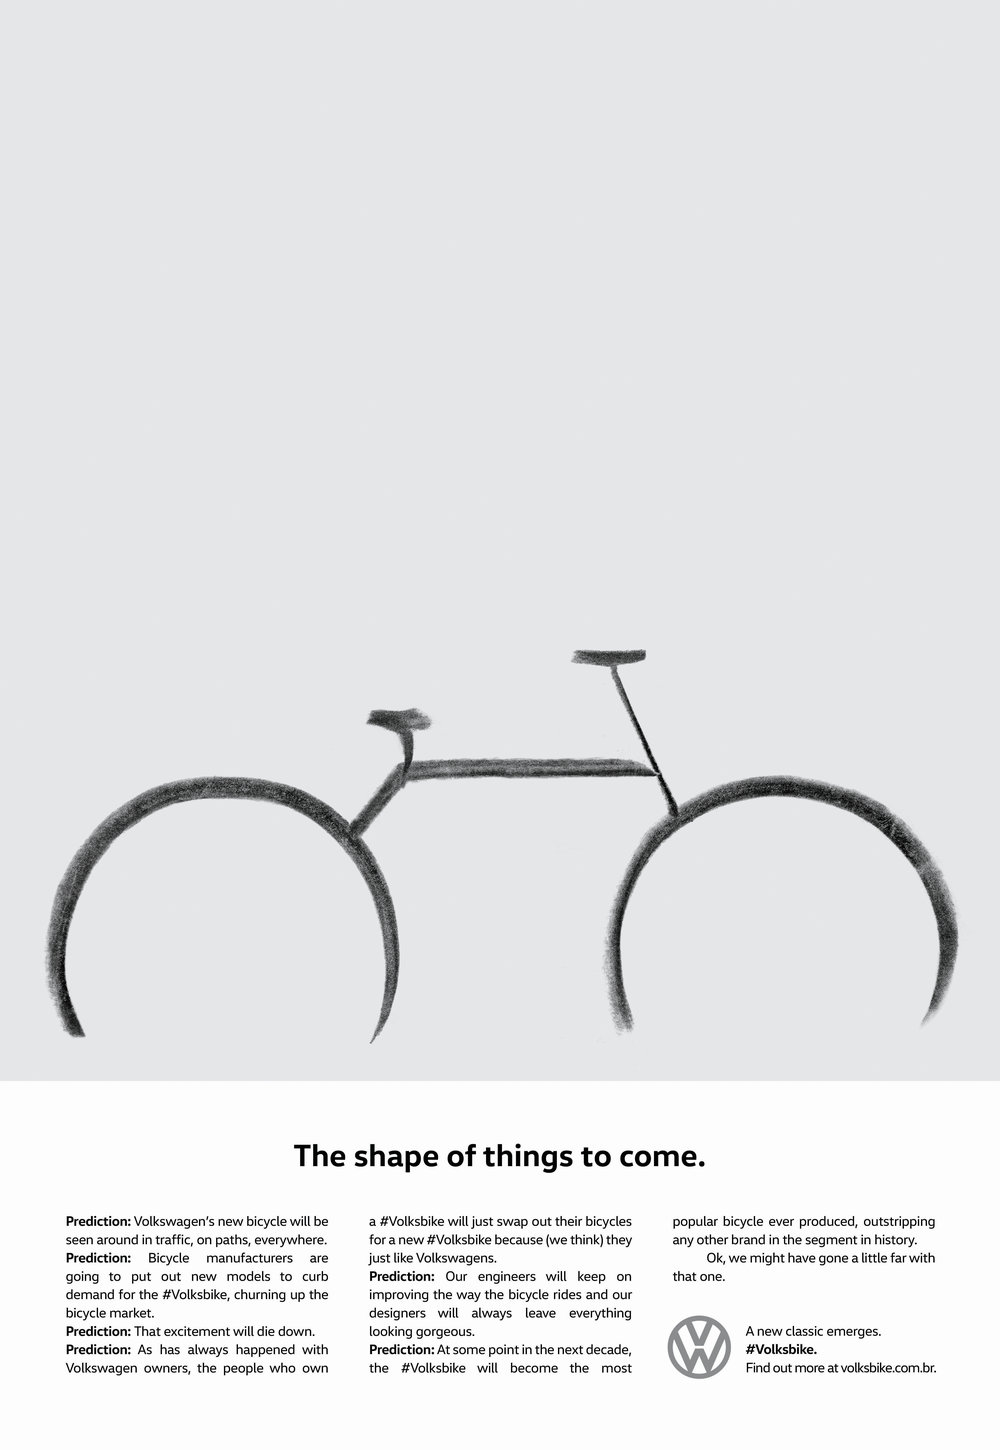 VOLKSBIKE_THE SHAPE OF THINGS TO COME.jpg